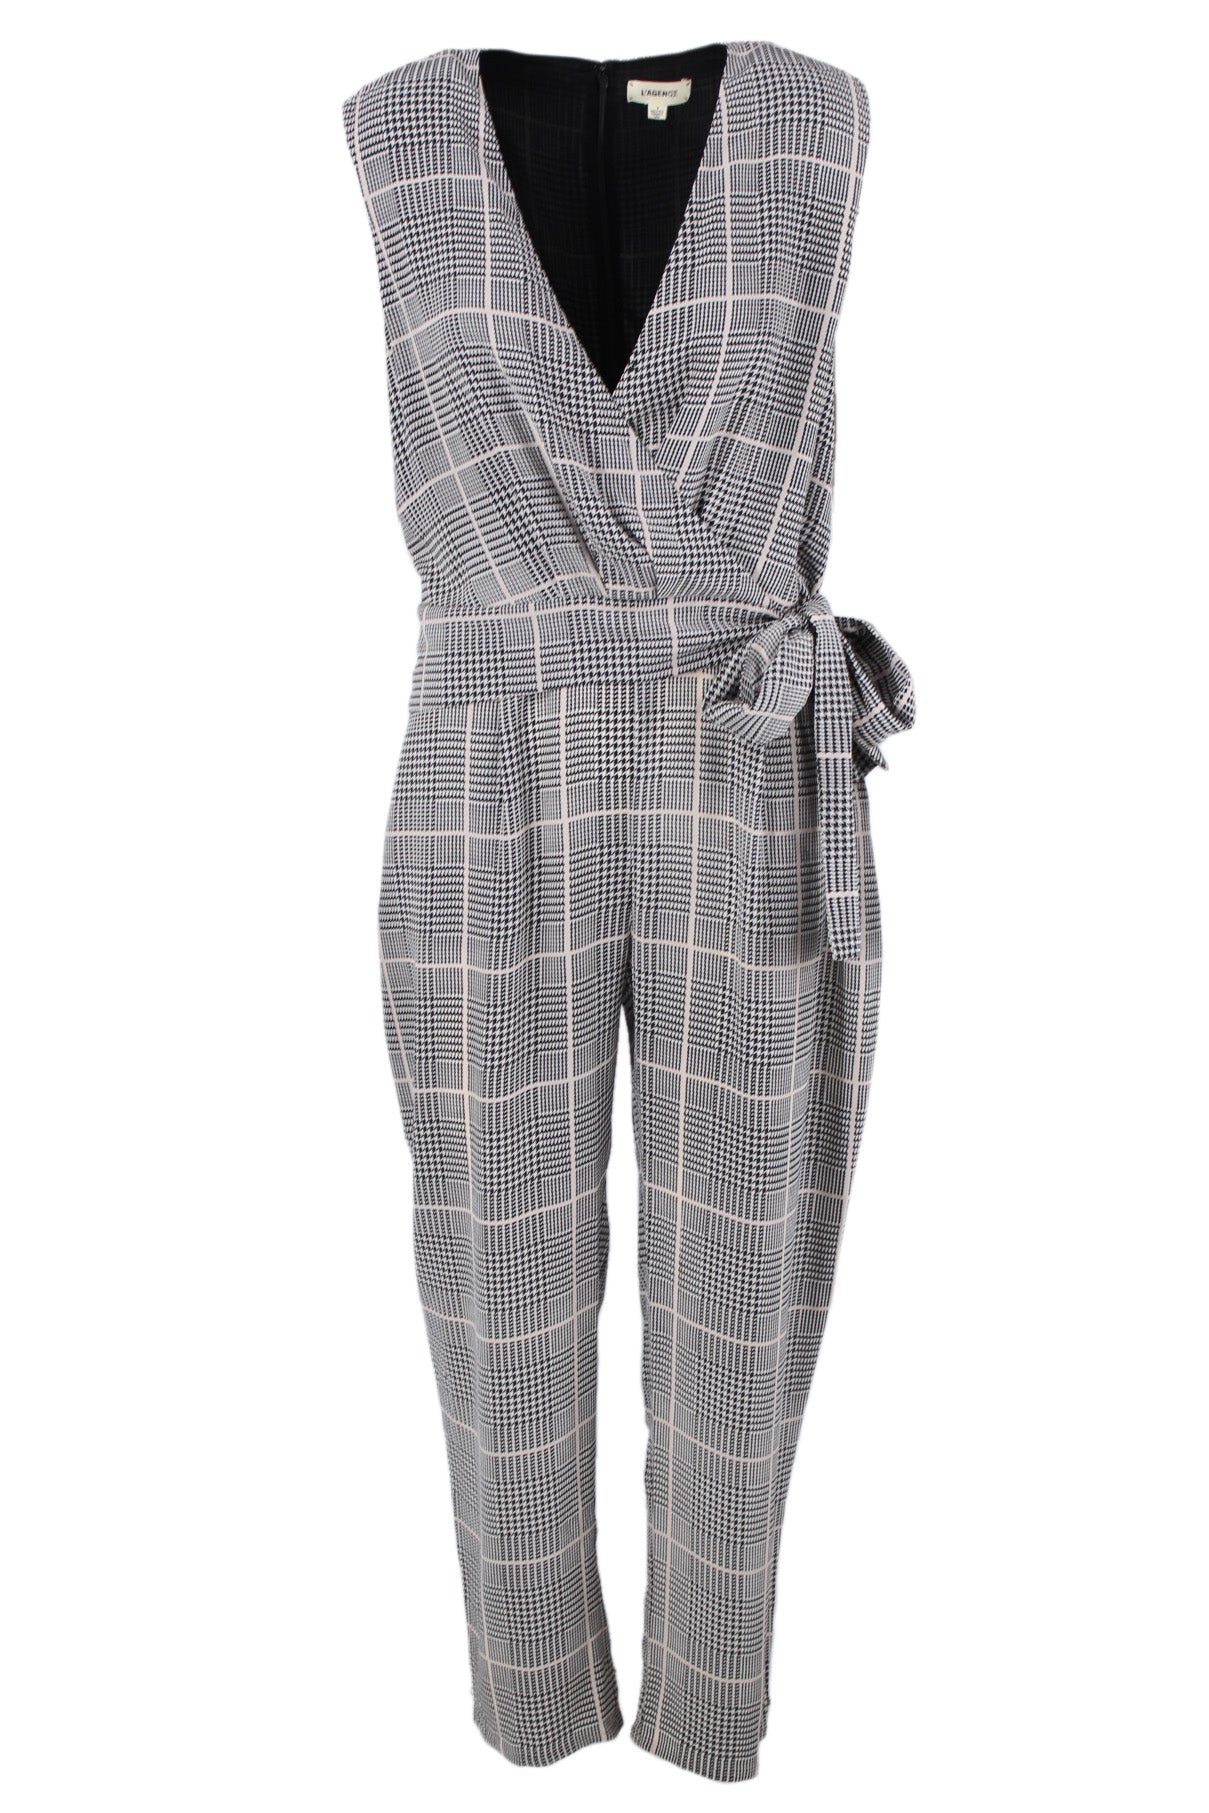 l'agence white & black houndstooth plaid print sleeveless jumpsuit. features a v neckline with a hook closure, self tie bow at waist, two side pockets, & a concealed back zipper closure.